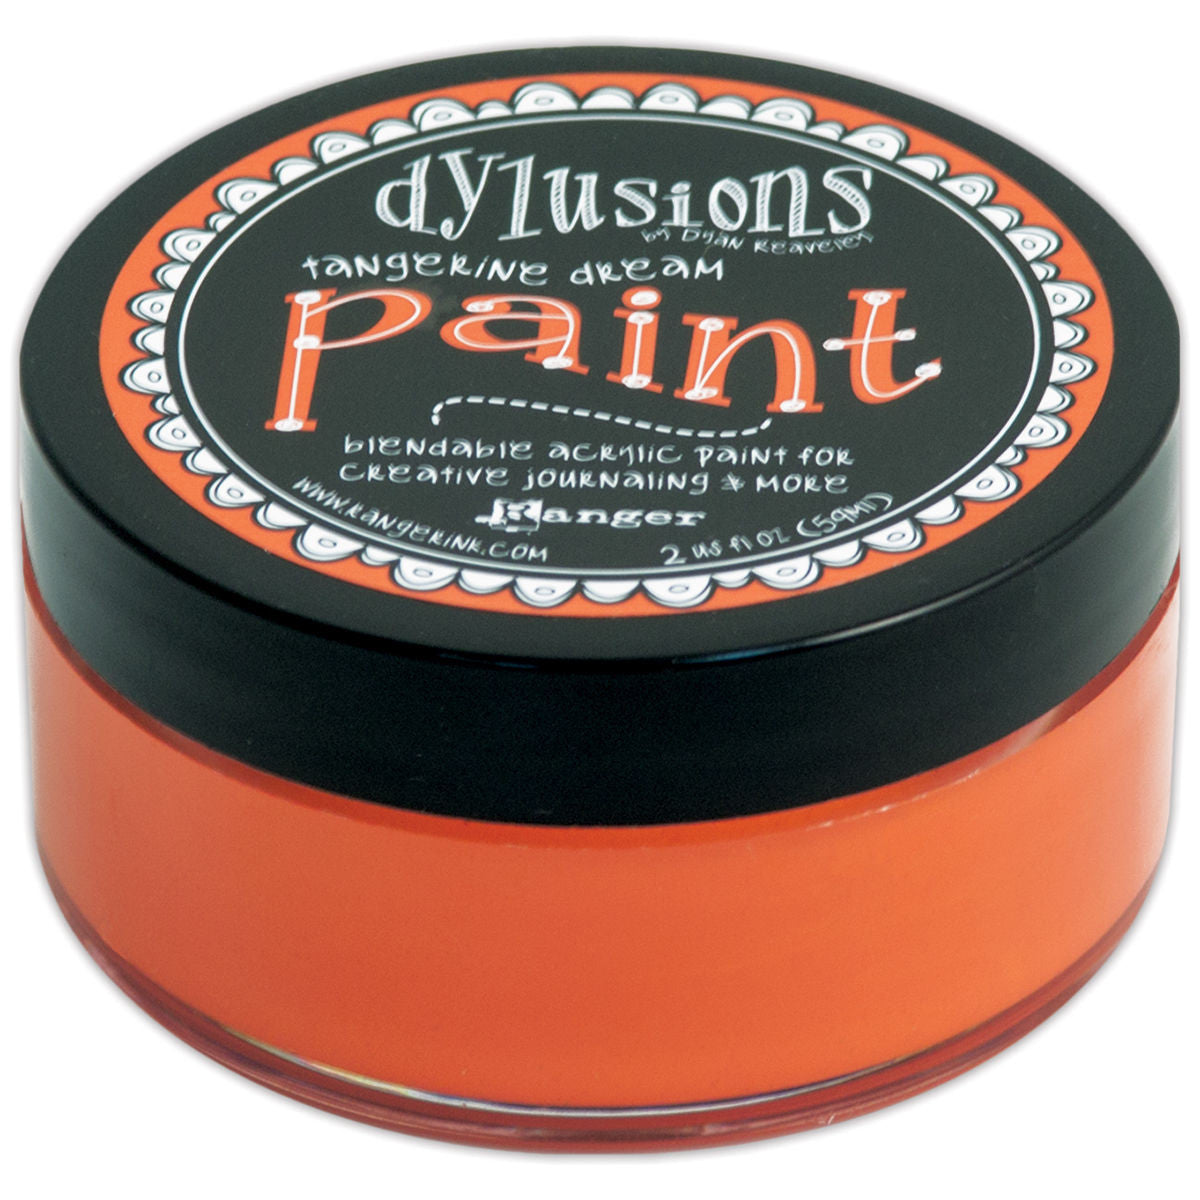 Dylusions Paint Tangerine Dream